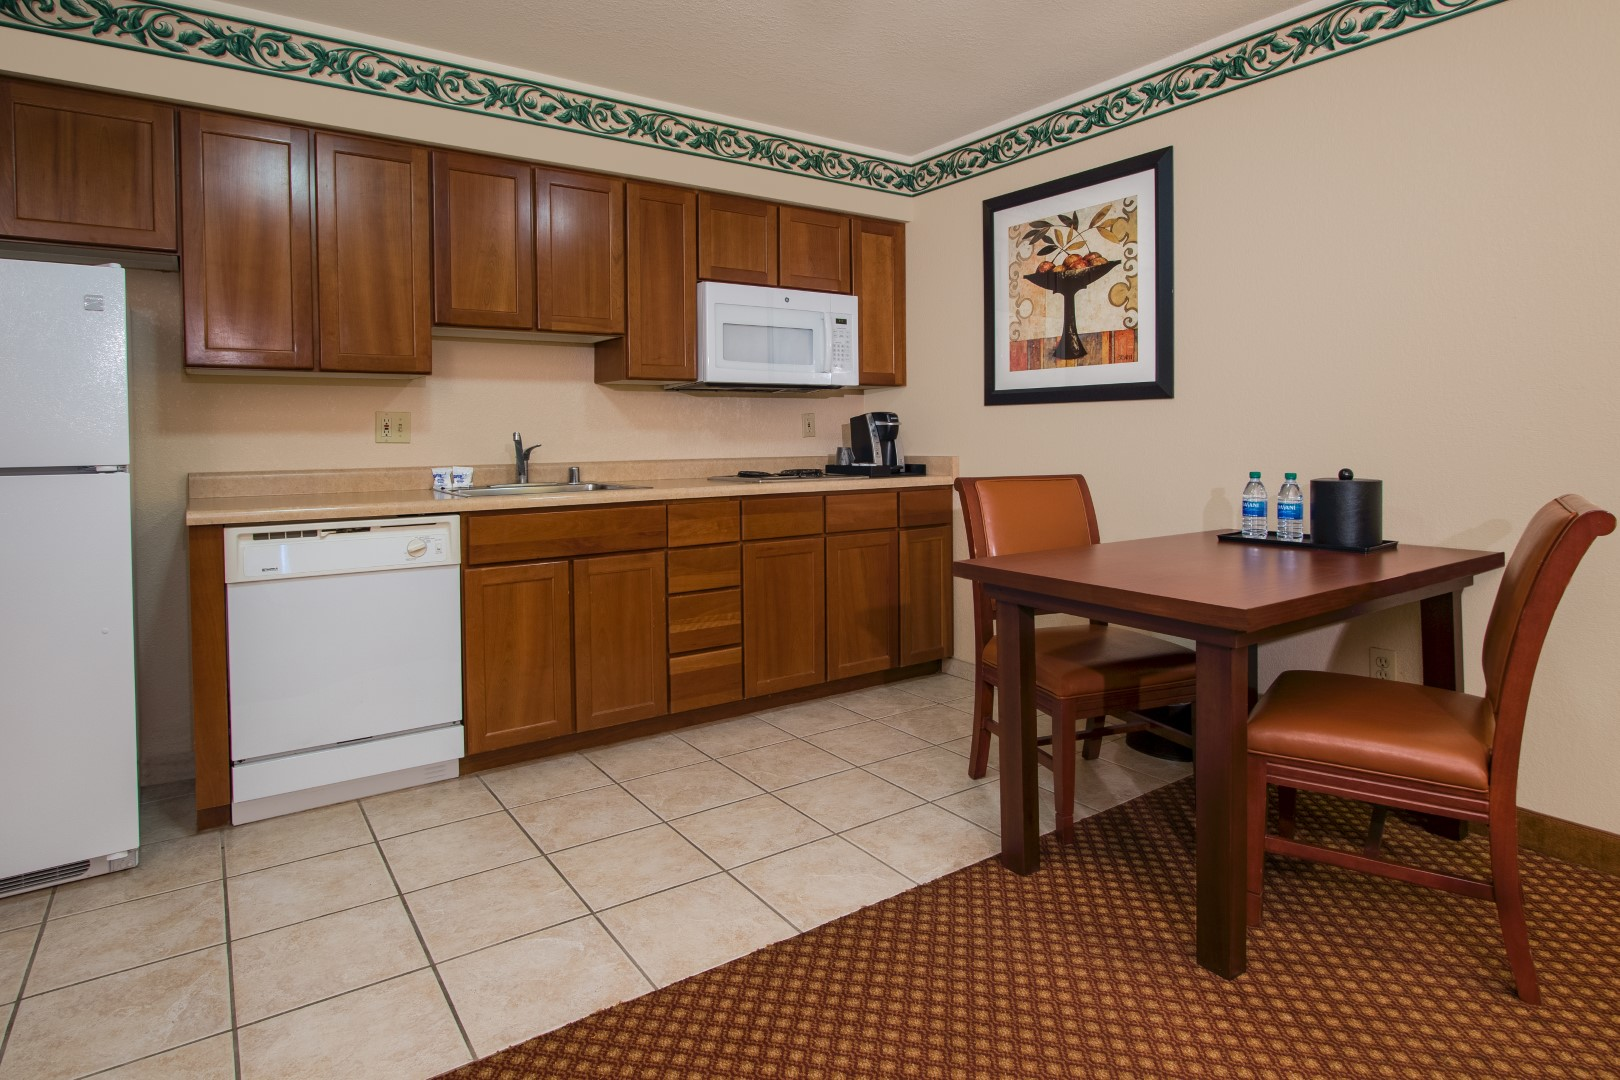 Hotels Elko Nv Shuttershotel Kitchenette